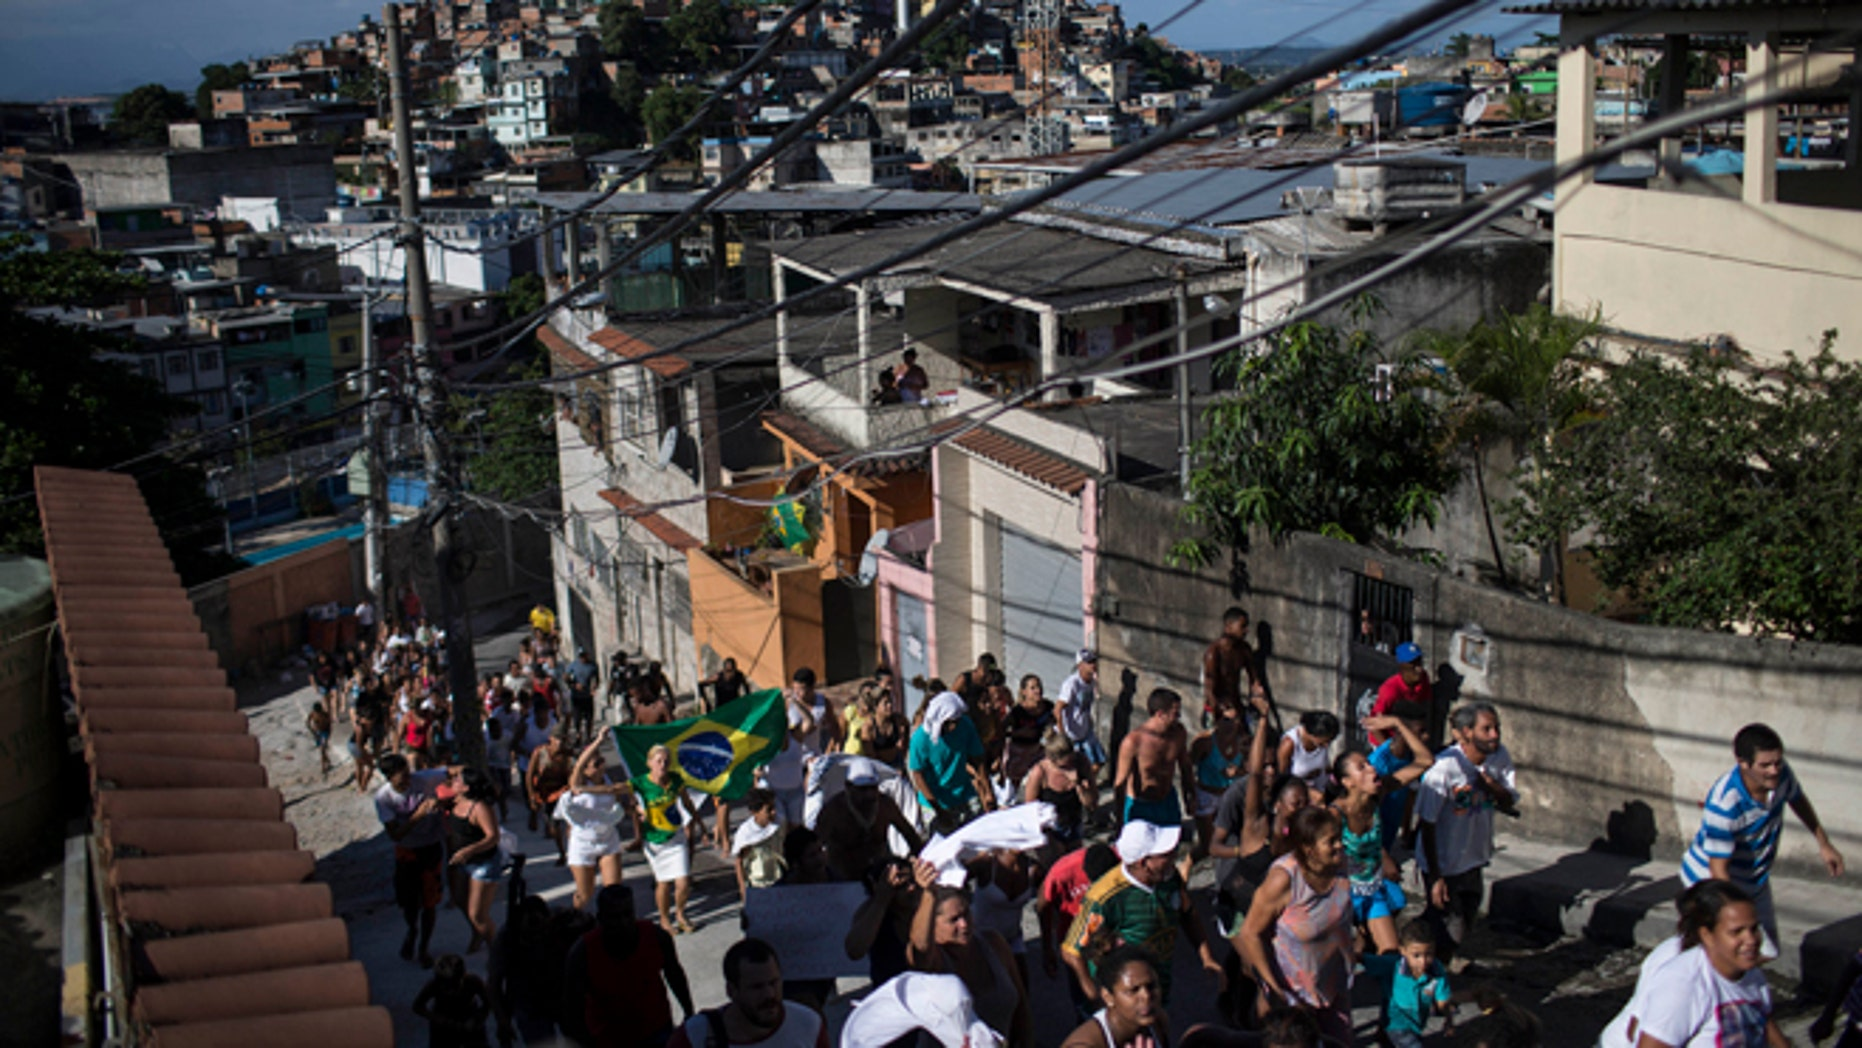 Residents take part in a protest march calling attention to the violence that erupts during police operations against suspected drug traffickers, in the Alemao slum complex in Rio de Janeiro, Brazil, Friday, April 3, 2015. Residents are protesting the shooting deaths of a young boy and a 41-year-old housewife, who were killed by stray bullets in the past few days. (AP Photo/Felipe Dana)